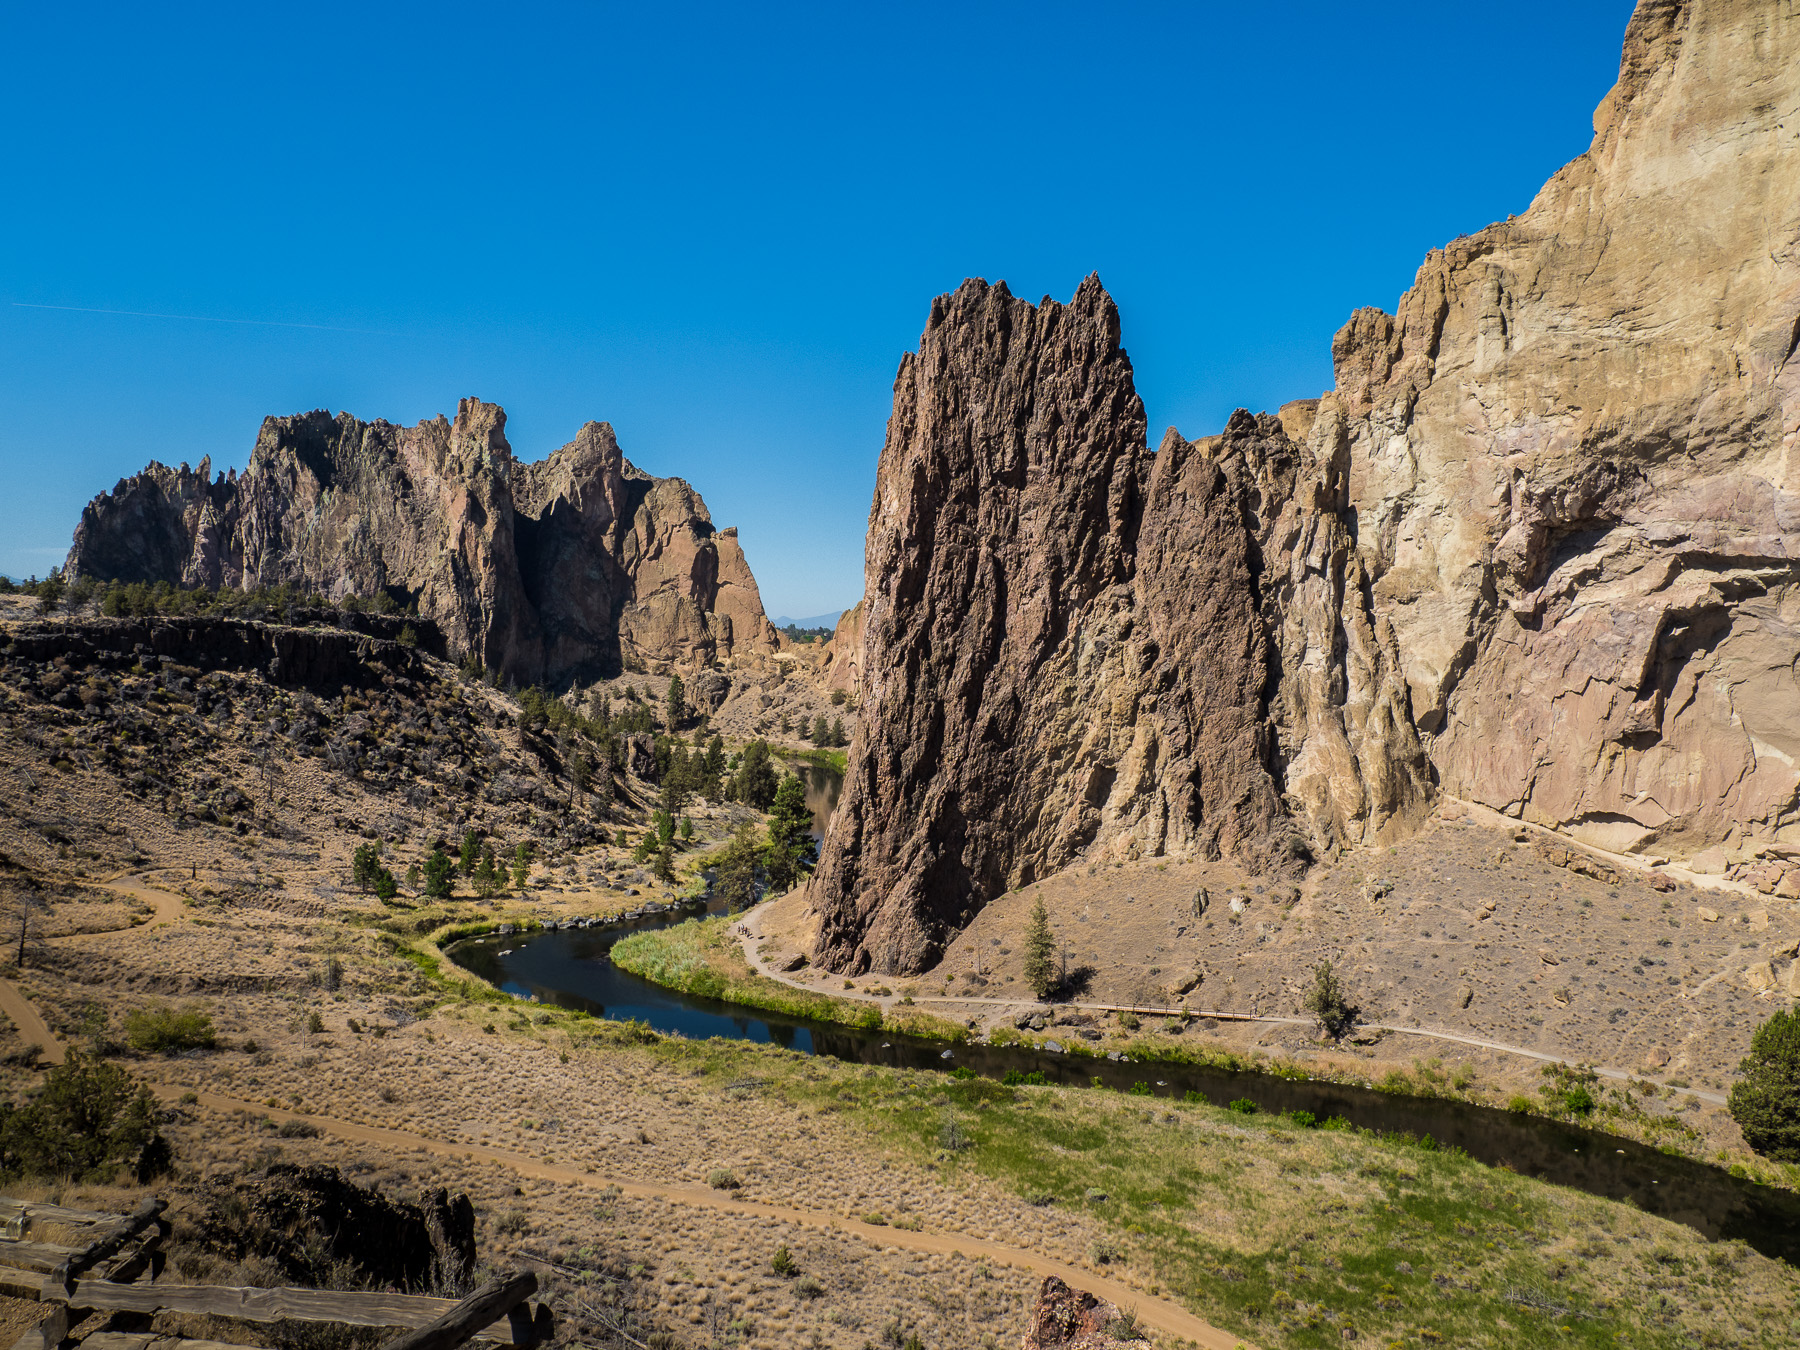 Smith Rocks, tolle Kletterfelsen